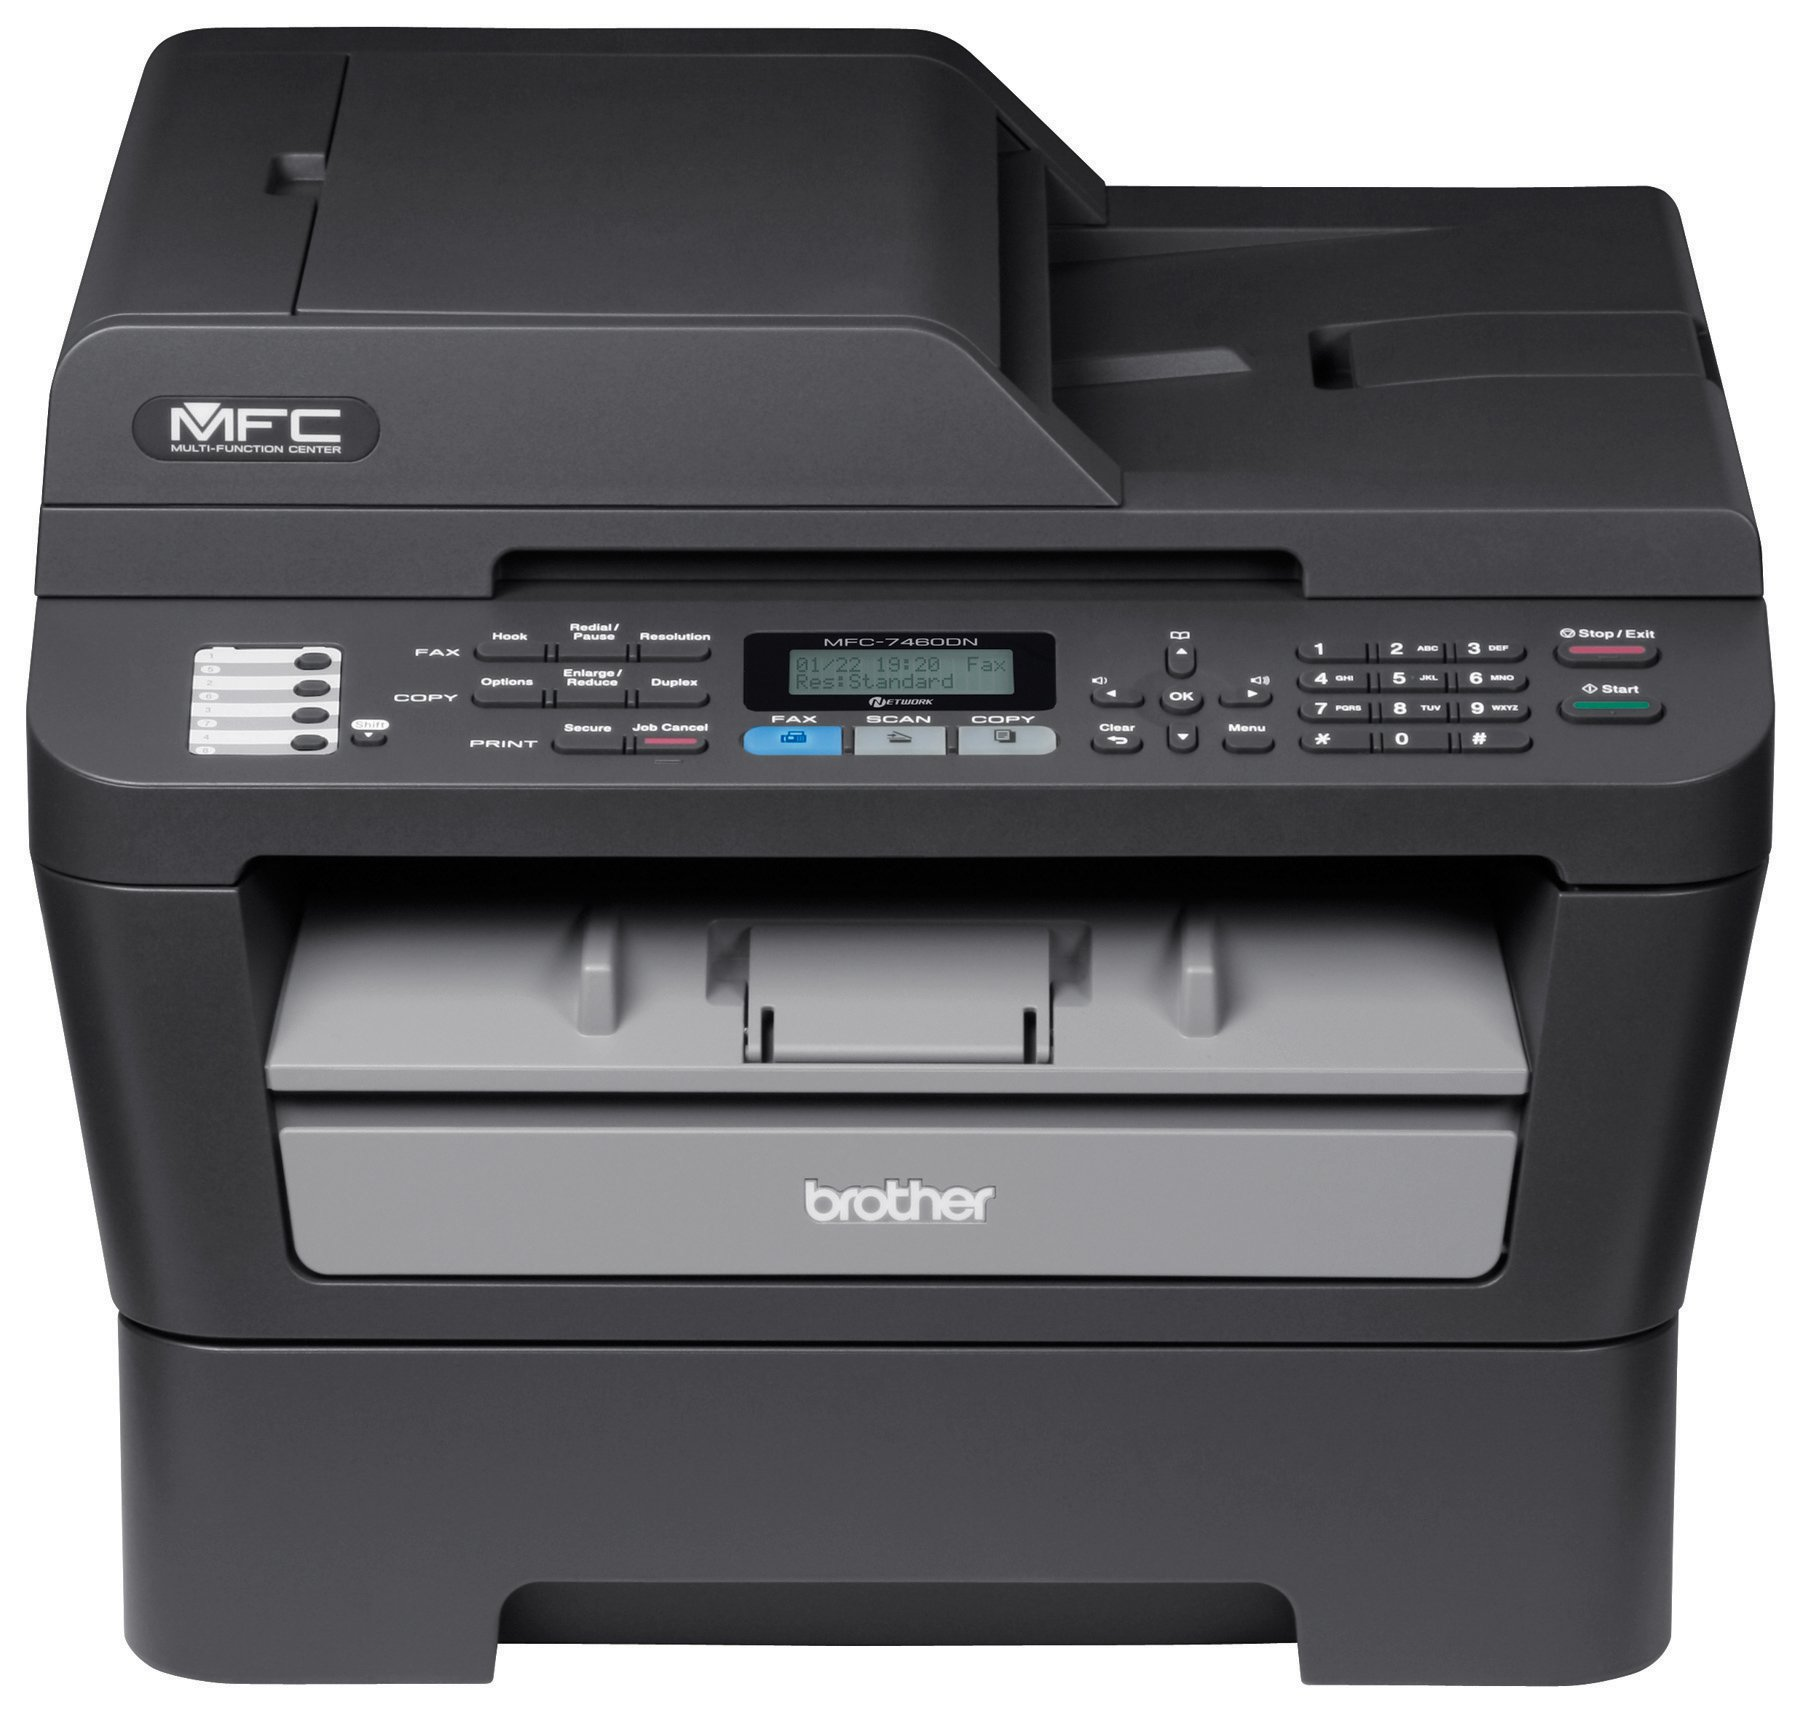 Brother MFC46DN Ethernet Monochrome Printer with Scanner, Copier & Fax